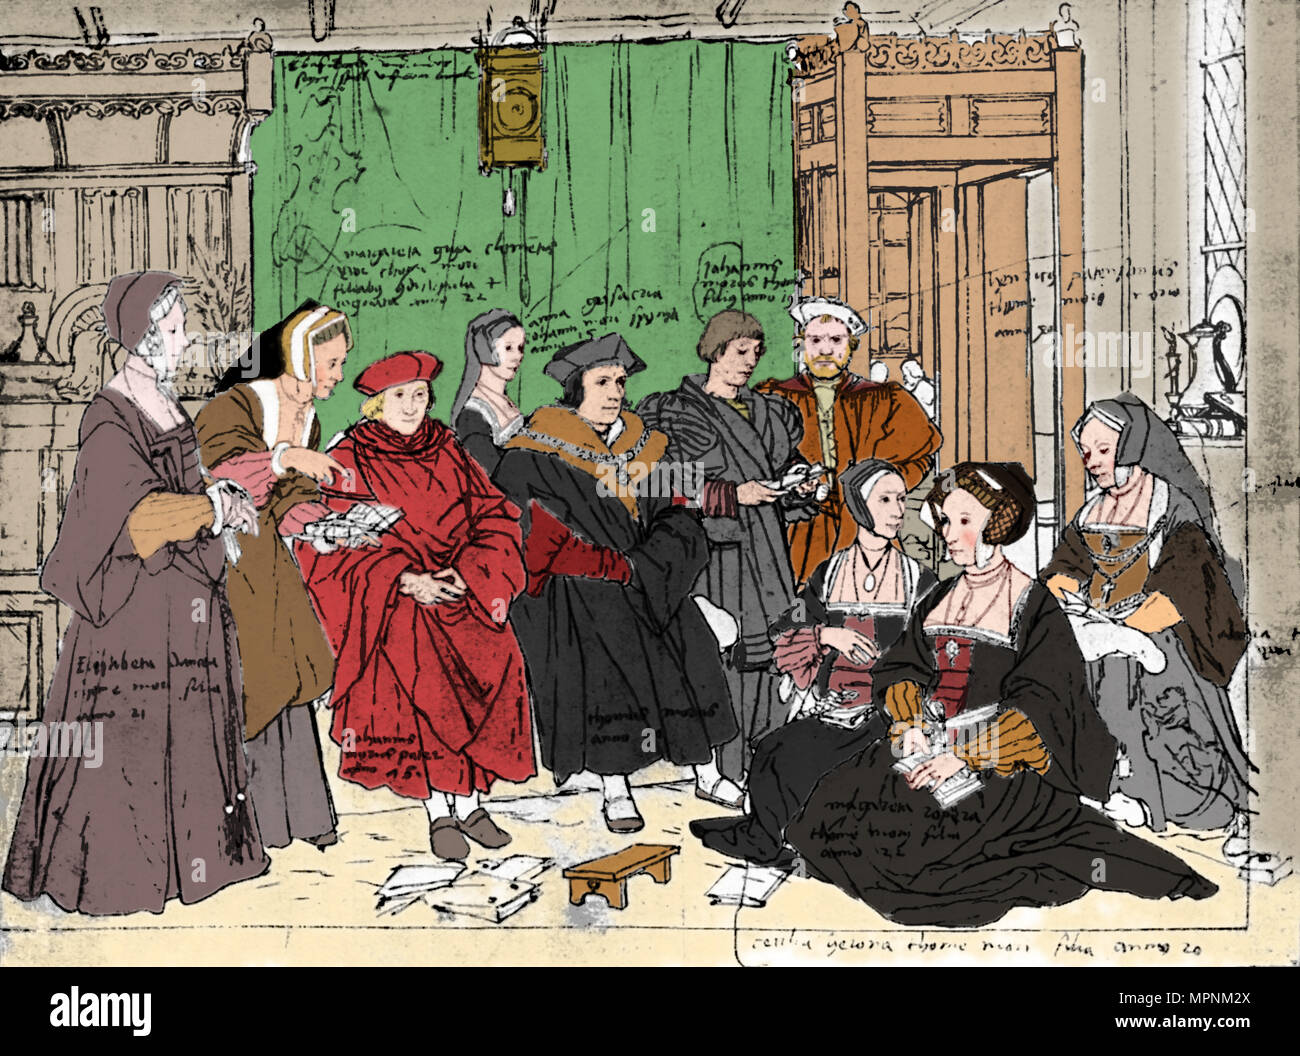 'The More Family, from the Sketch by Holbein at Basle Museum', 1527, (1903). Artist: Hans Holbein the Younger. - Stock Image